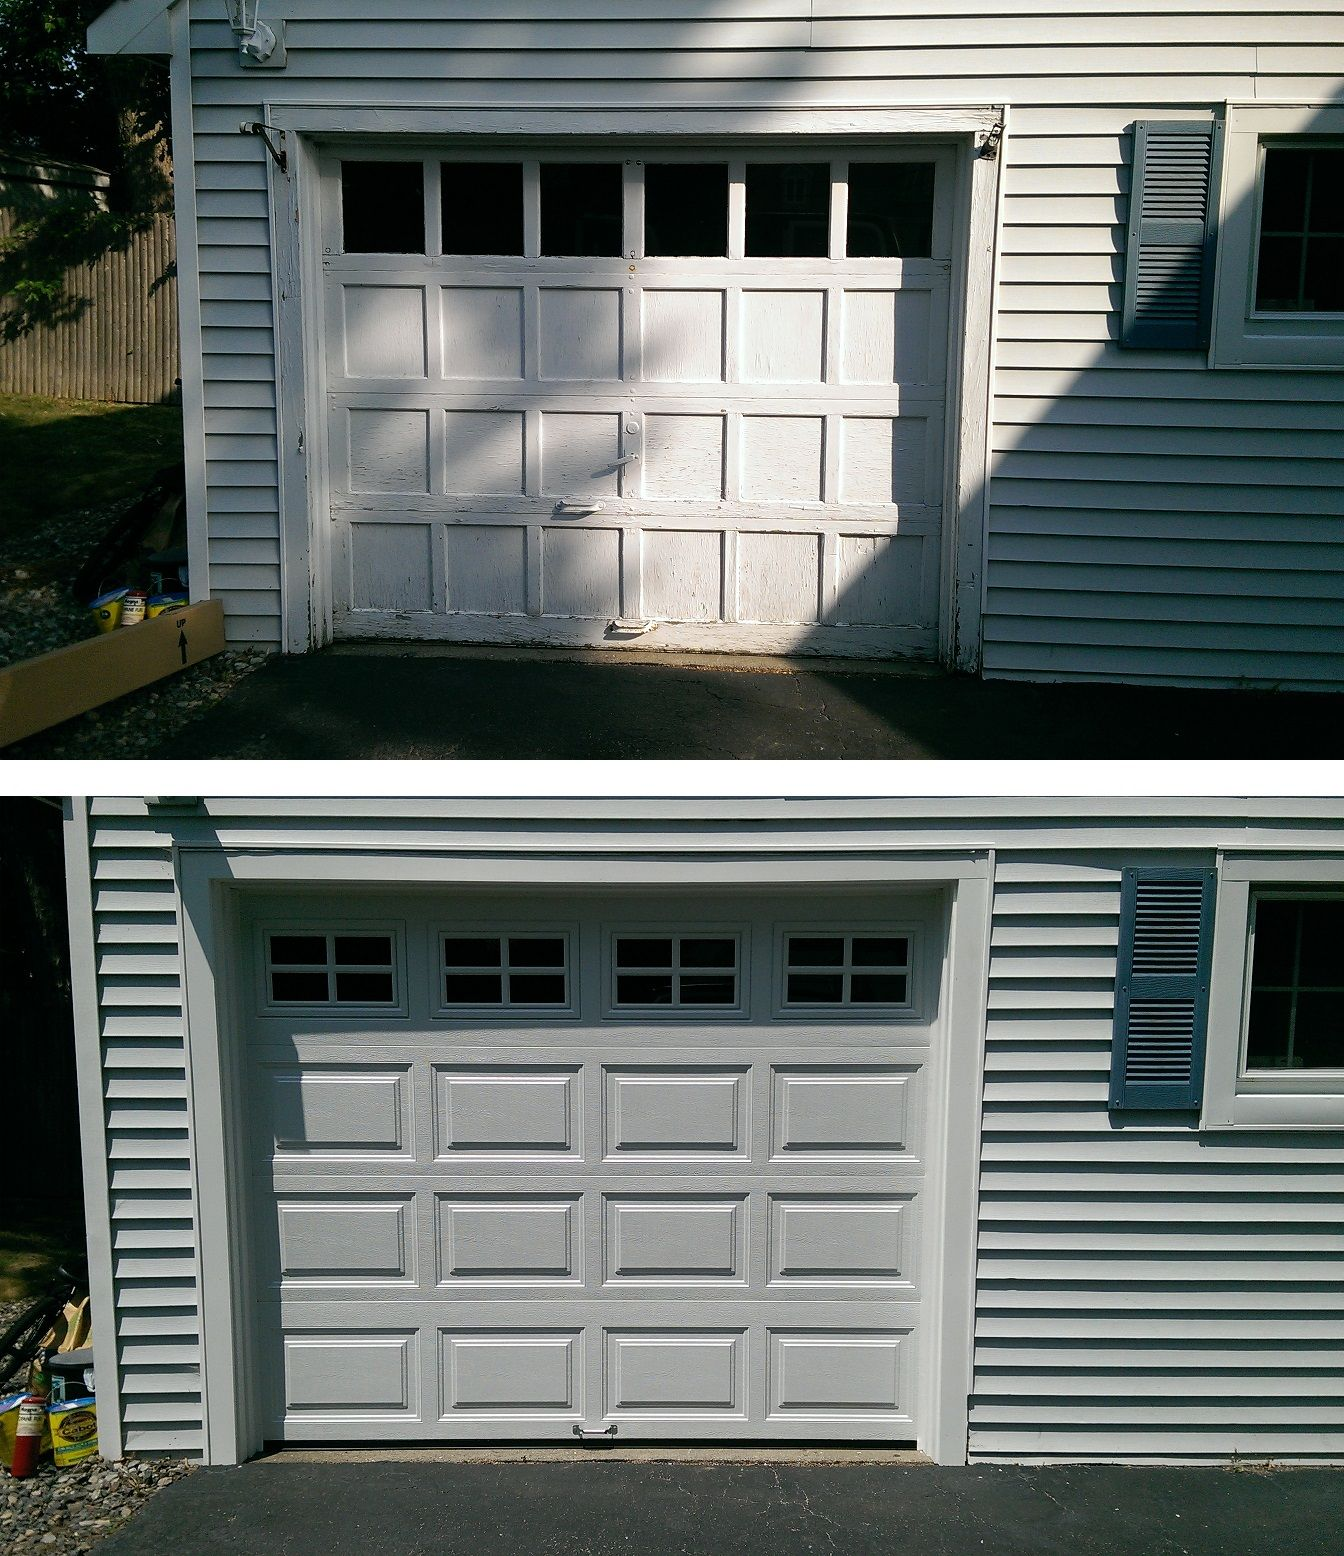 Old Wood Recessed Panel Door Replaced With Clopay 4050 Raised Panel Steel Insulated Garage Door In White Wi House Exterior Overhead Door Garage Door Insulation